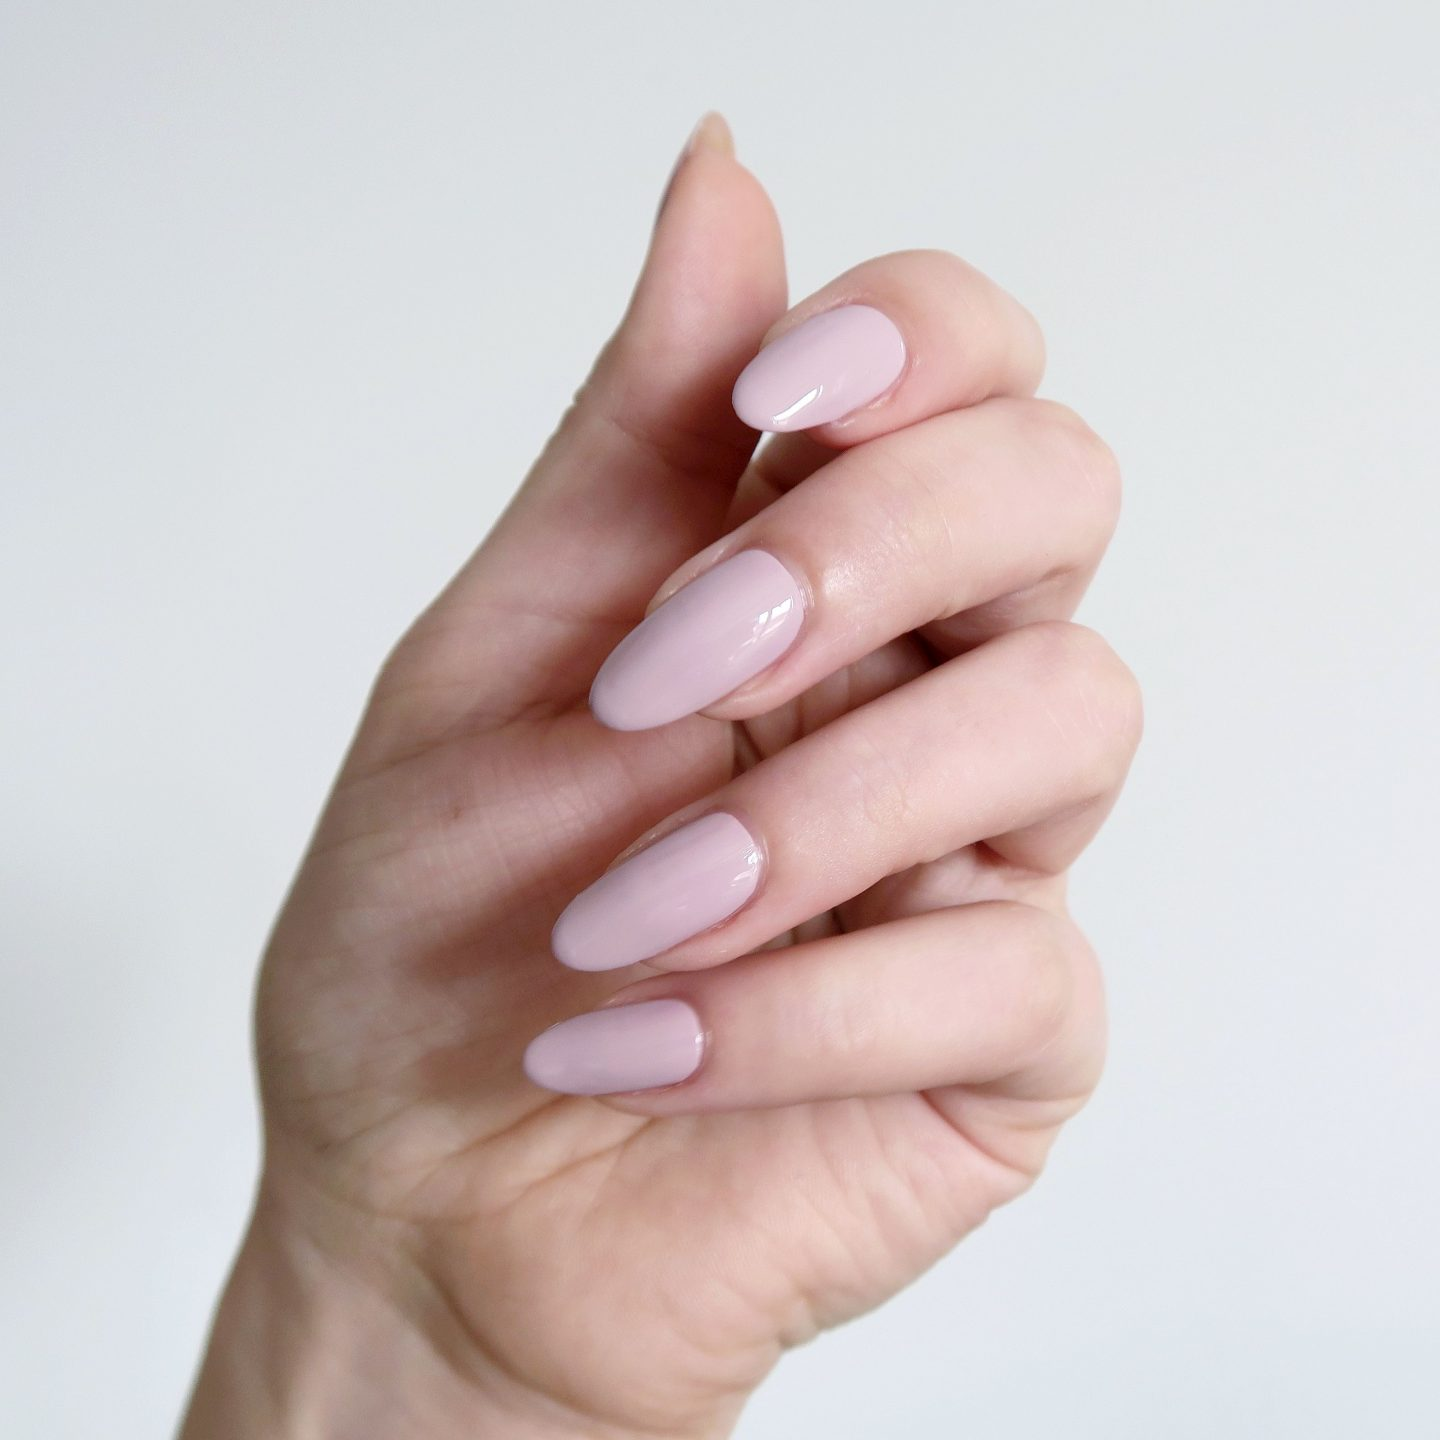 Repin and click to see my review of the new Morgan Taylor Color Of Petals collection. Morgan Taylor 'Gardenia My Heart' - a dusty rose creme nail polish inspiration. Spring manicure inspiration. #talontedlex